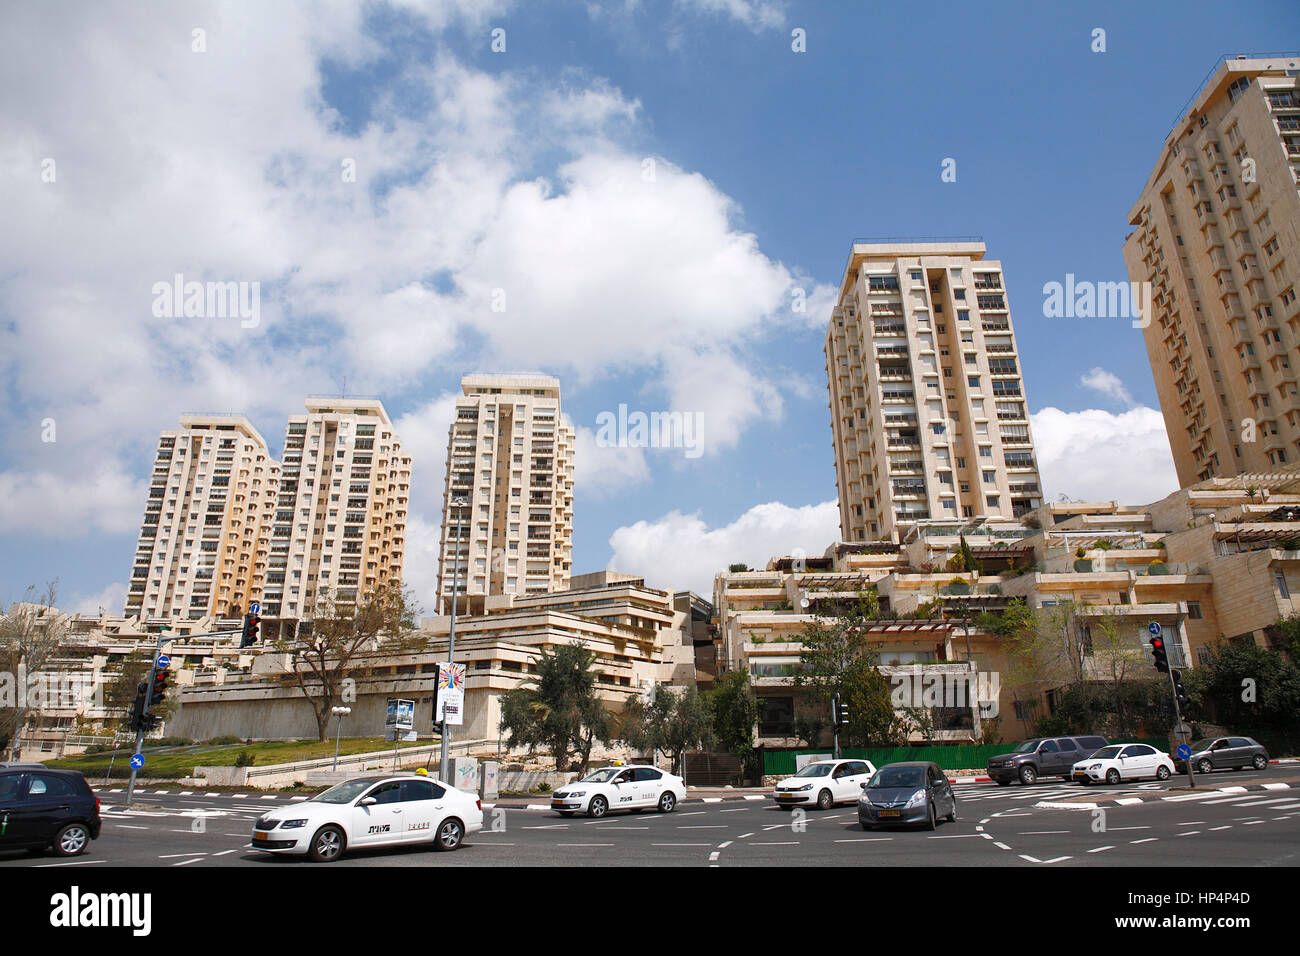 apartement building in the city of jerusalem, israel Stock Photo